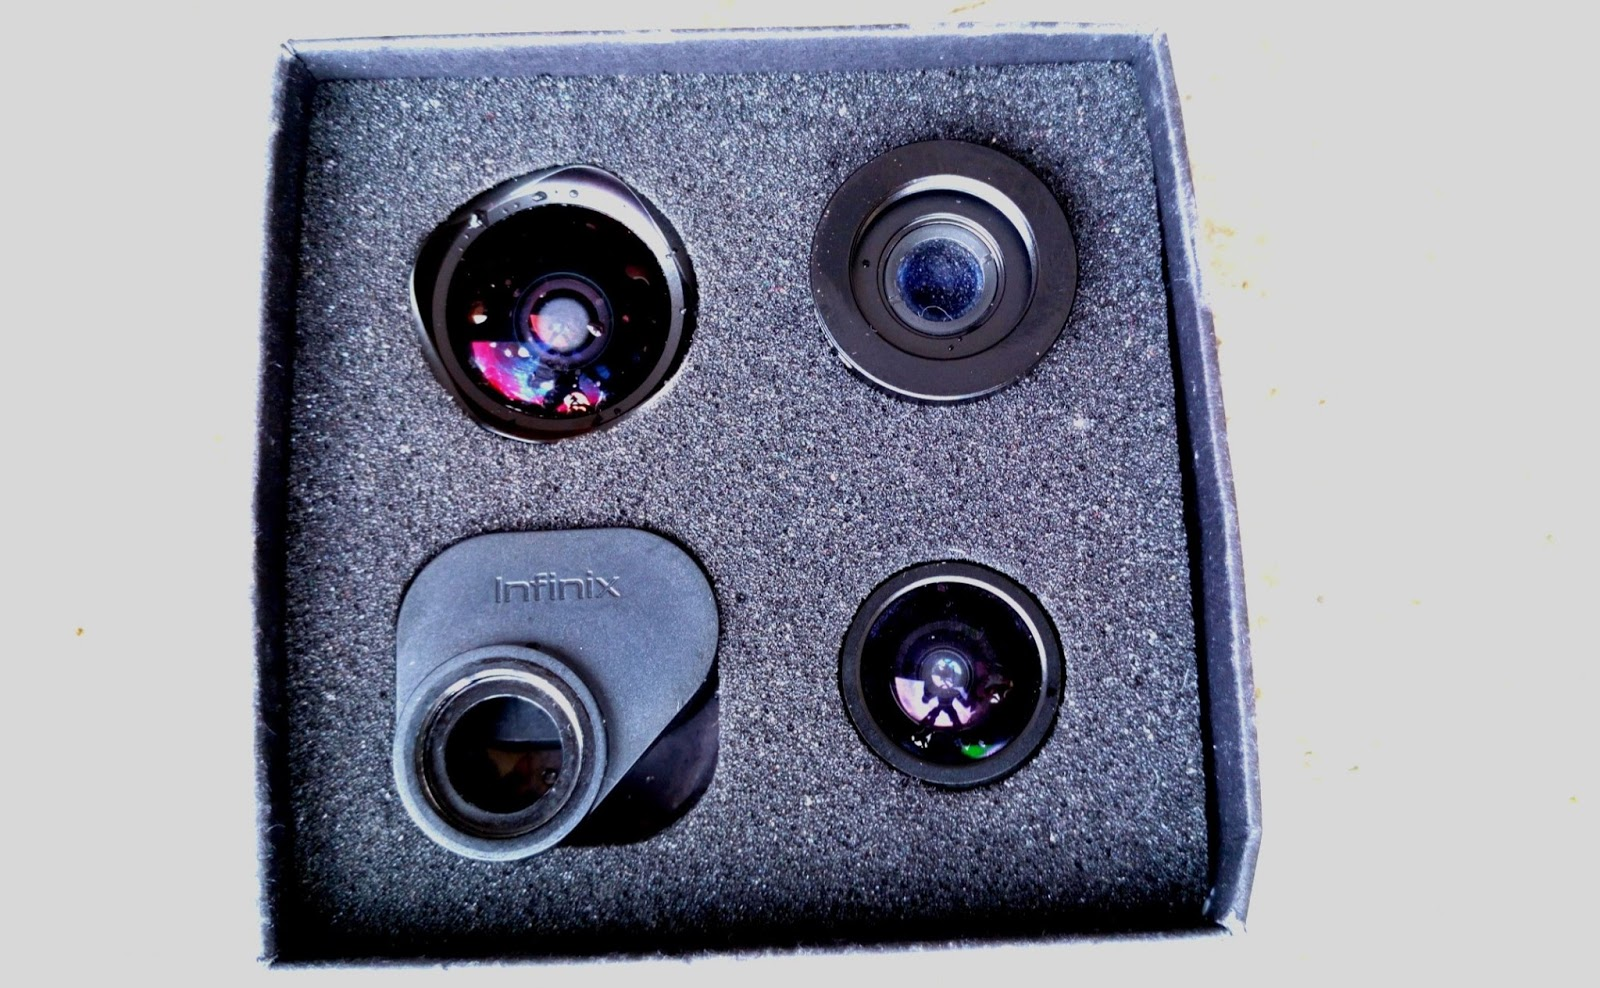 All X-Lens contained in the box